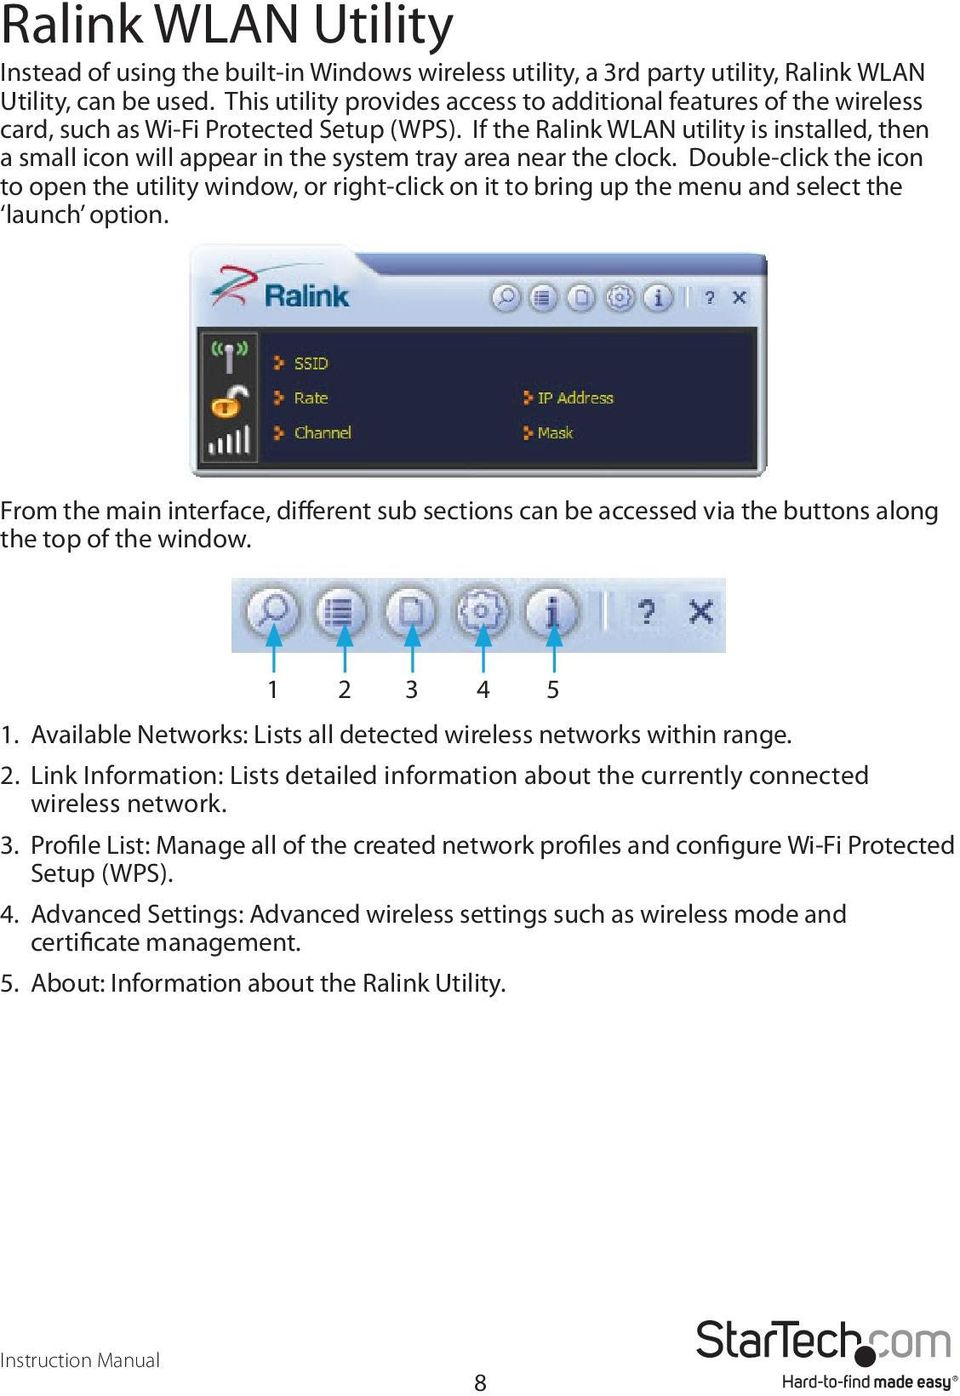 If the Ralink WLAN utility is installed, then a small icon will appear in the system tray area near the clock.